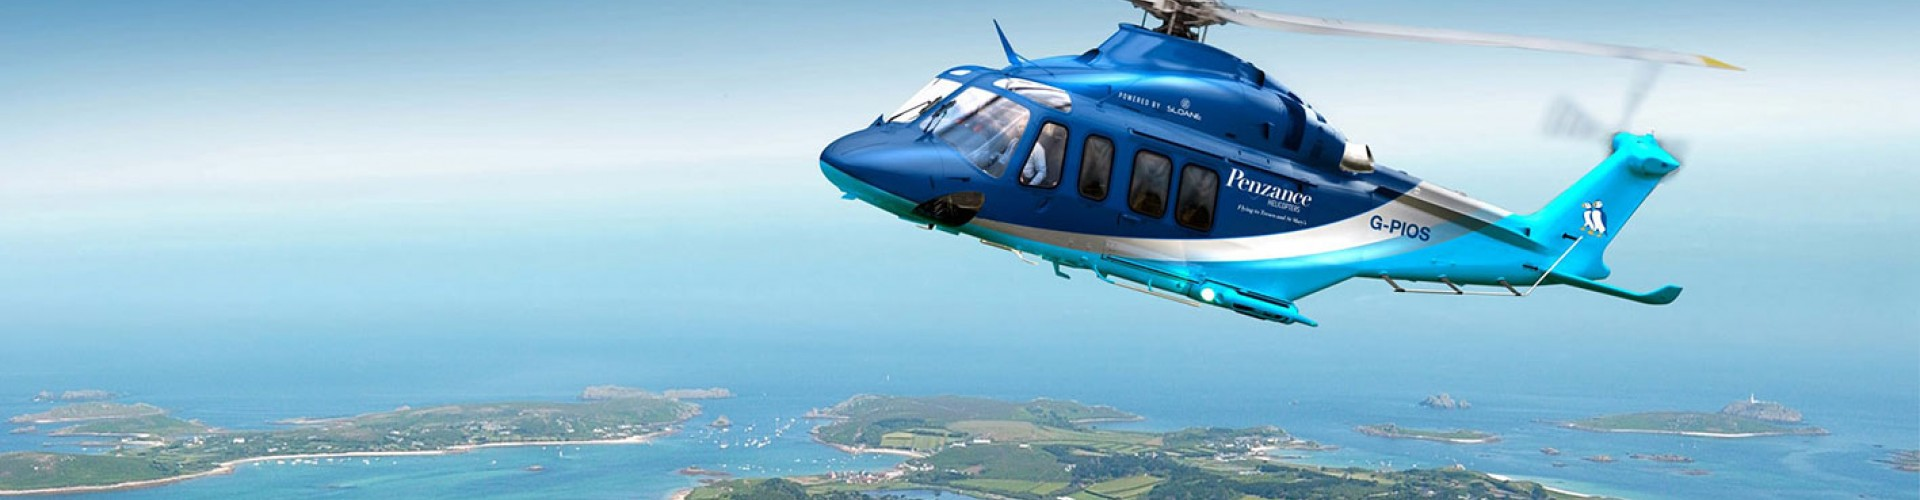 penzance helicopter over isles of scilly